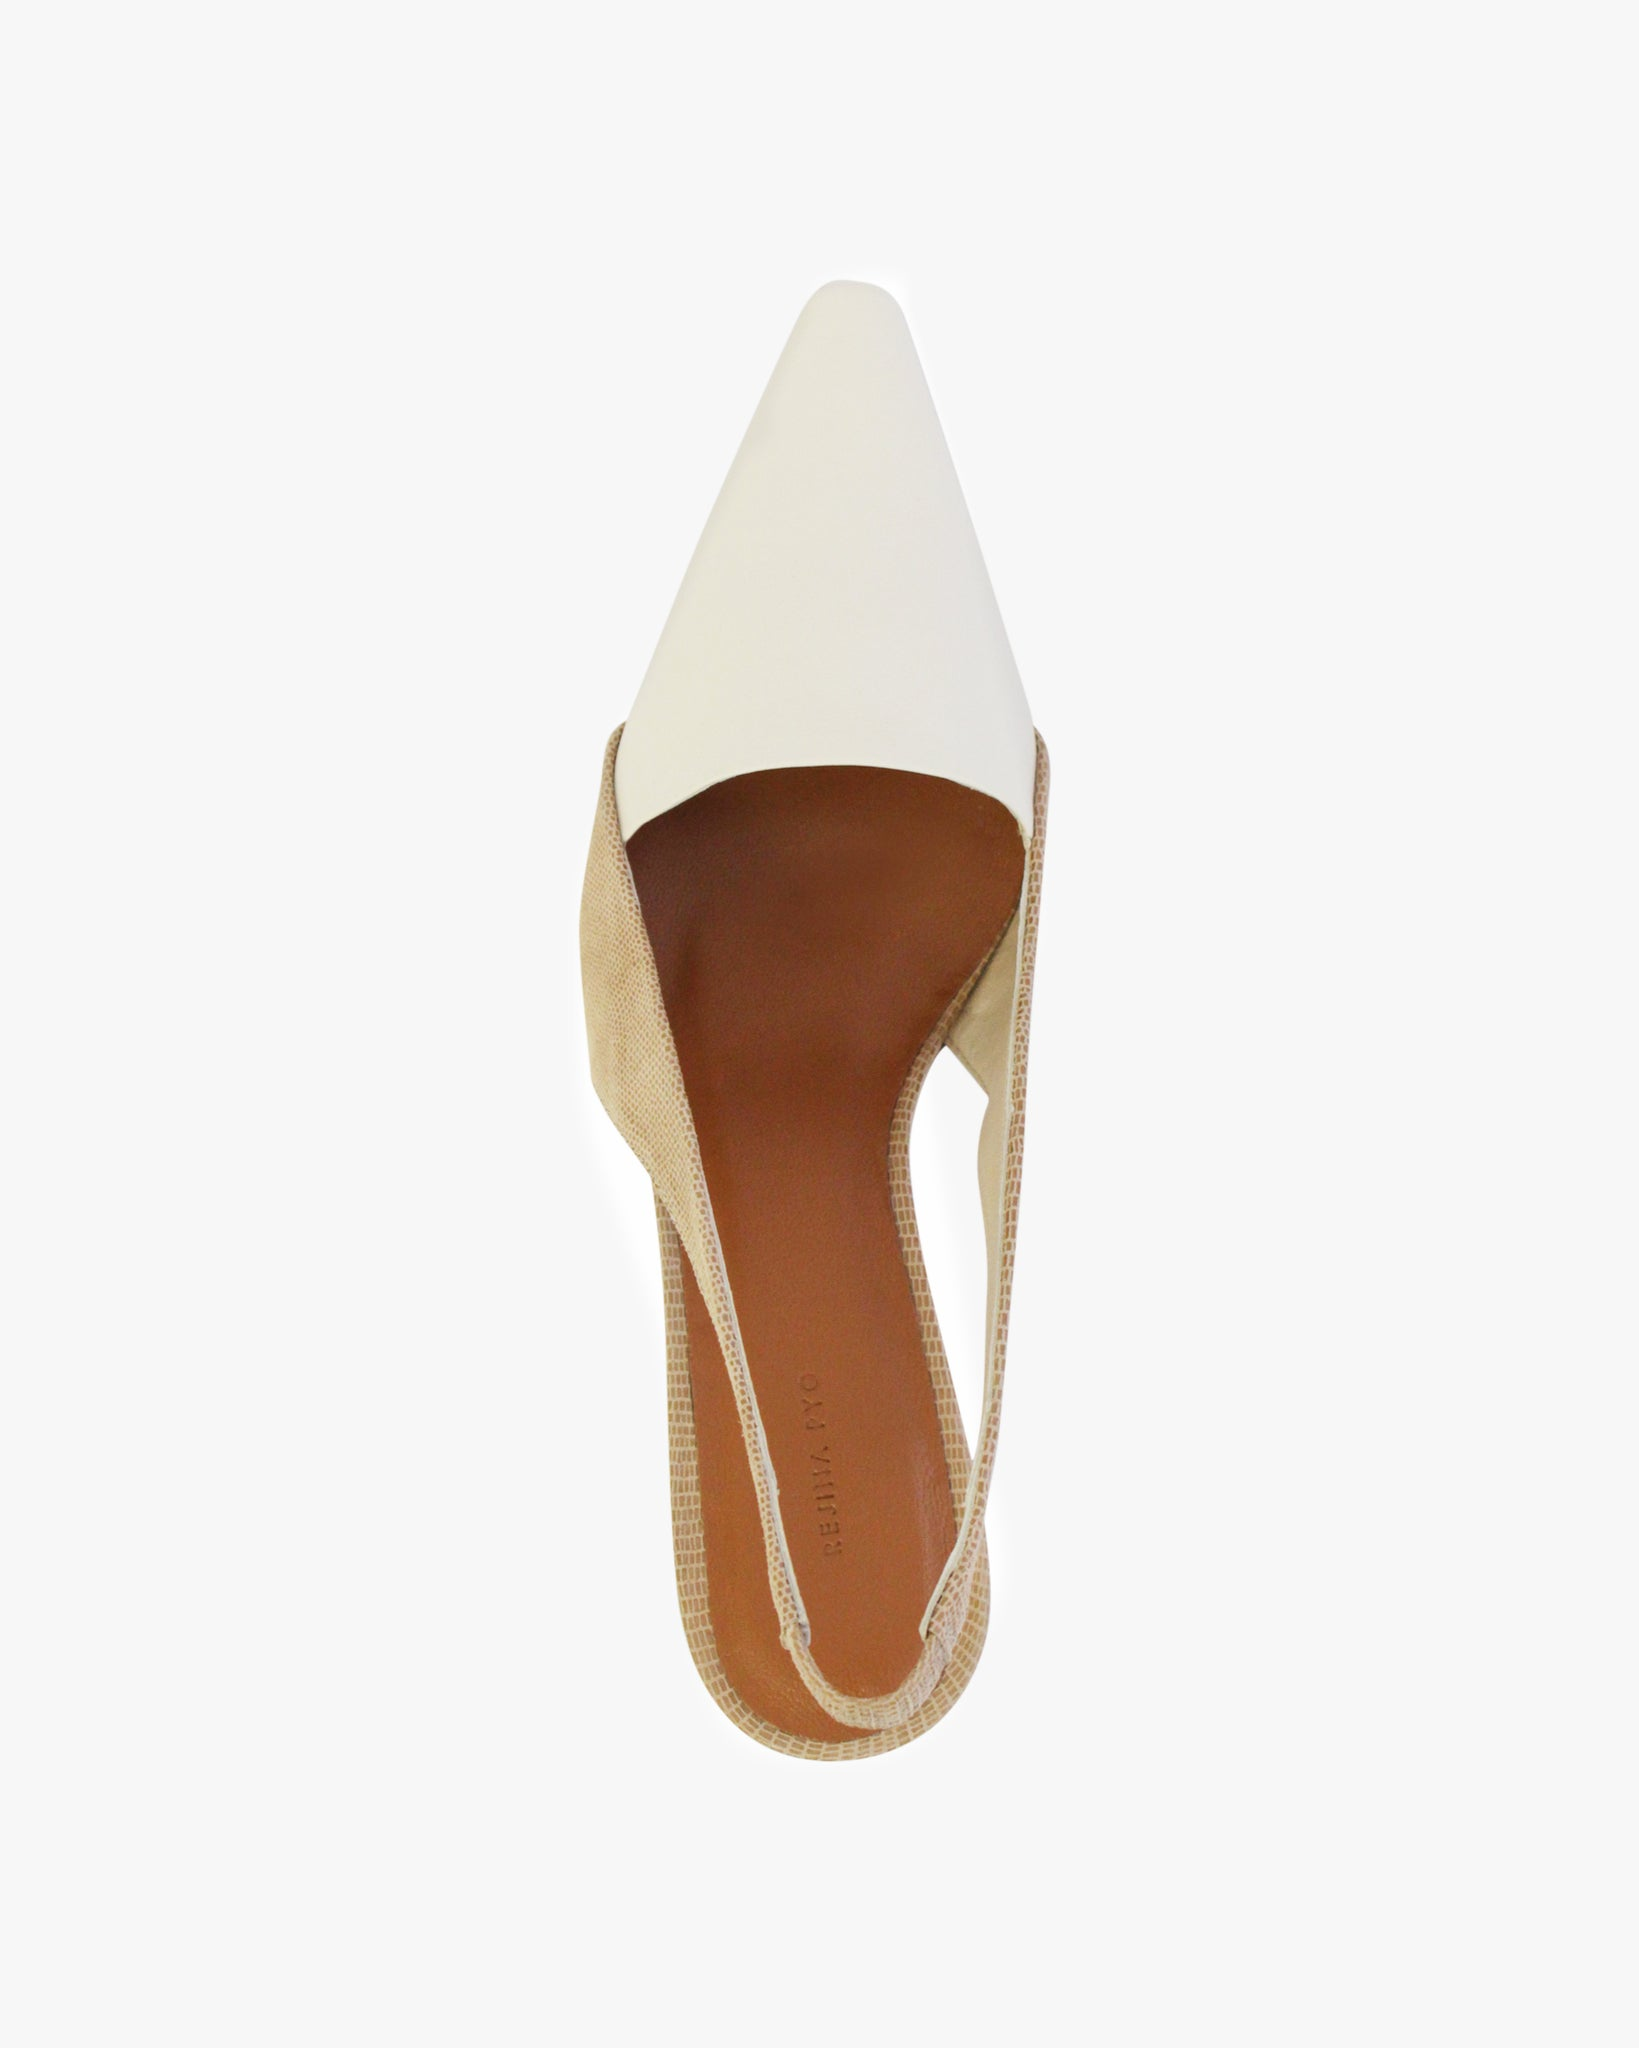 Taylor Slingback with White Wood Heel Leather Lizard White and Taupe